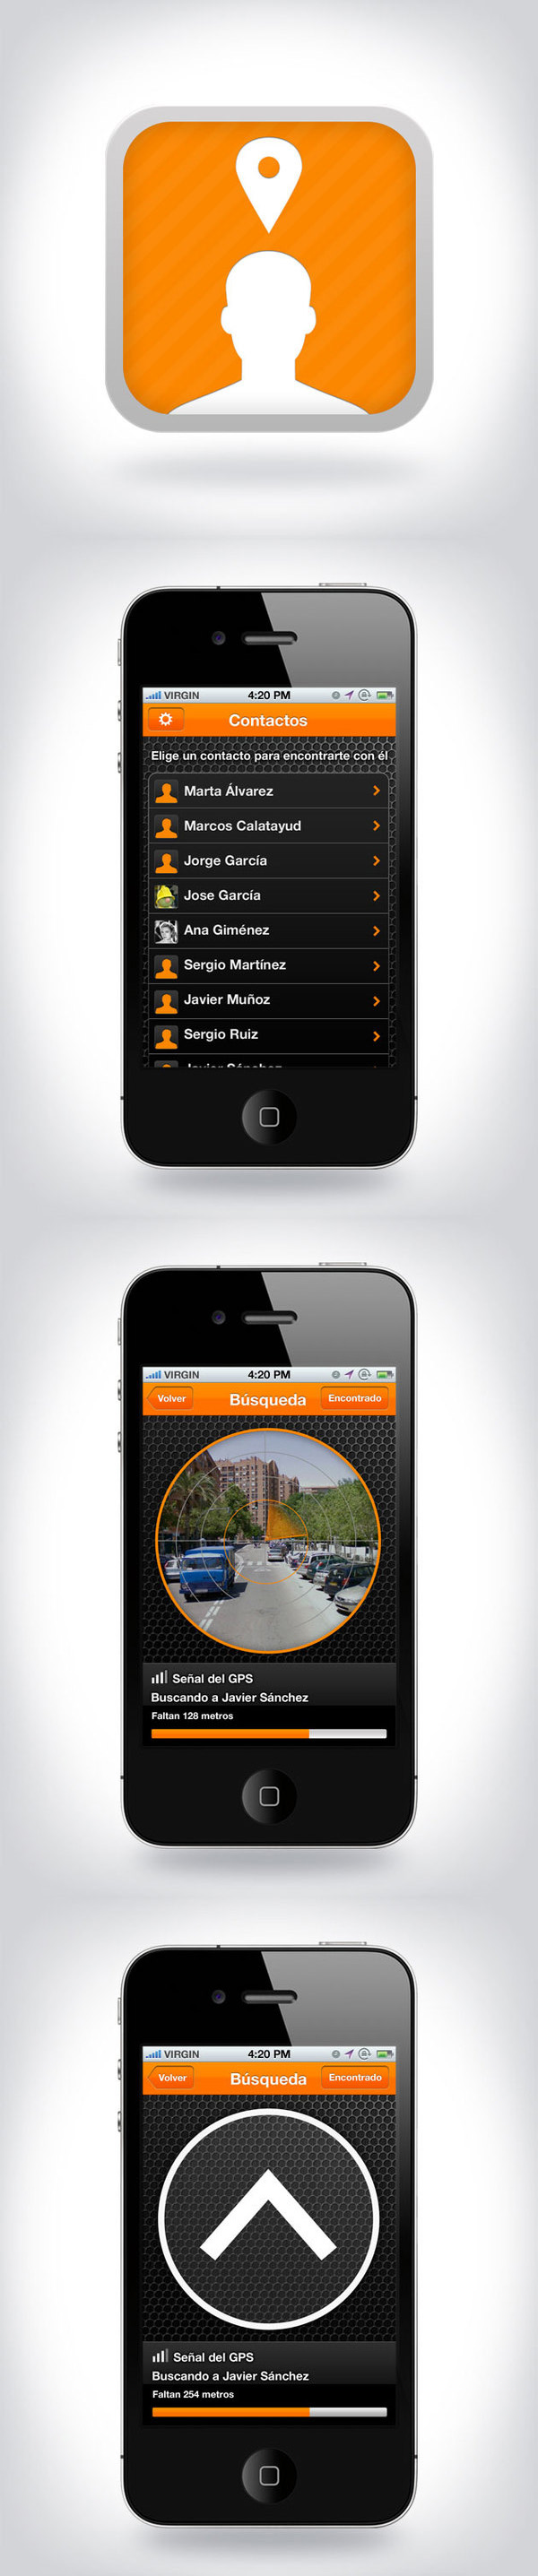 Meet Me App by Ana Ascorbe, via Behance Me app, Web